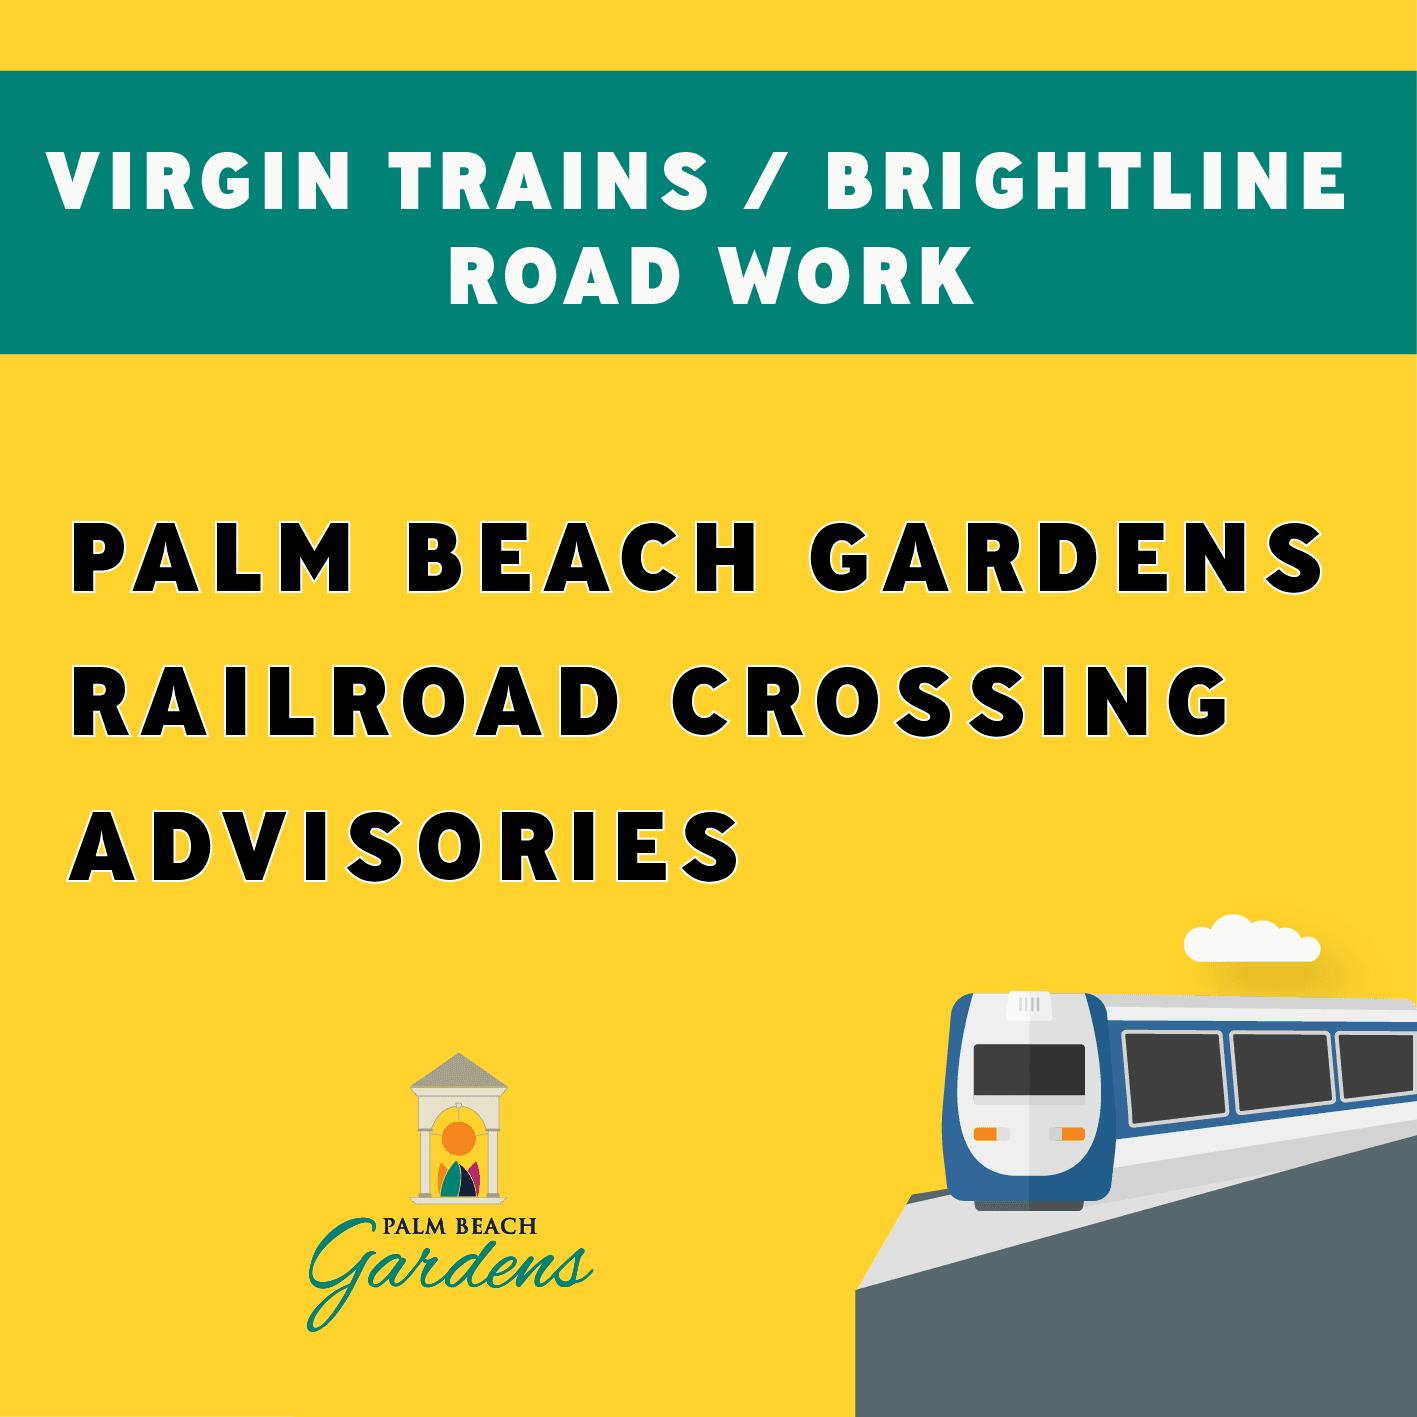 Railwork in Palm Beach Gardens